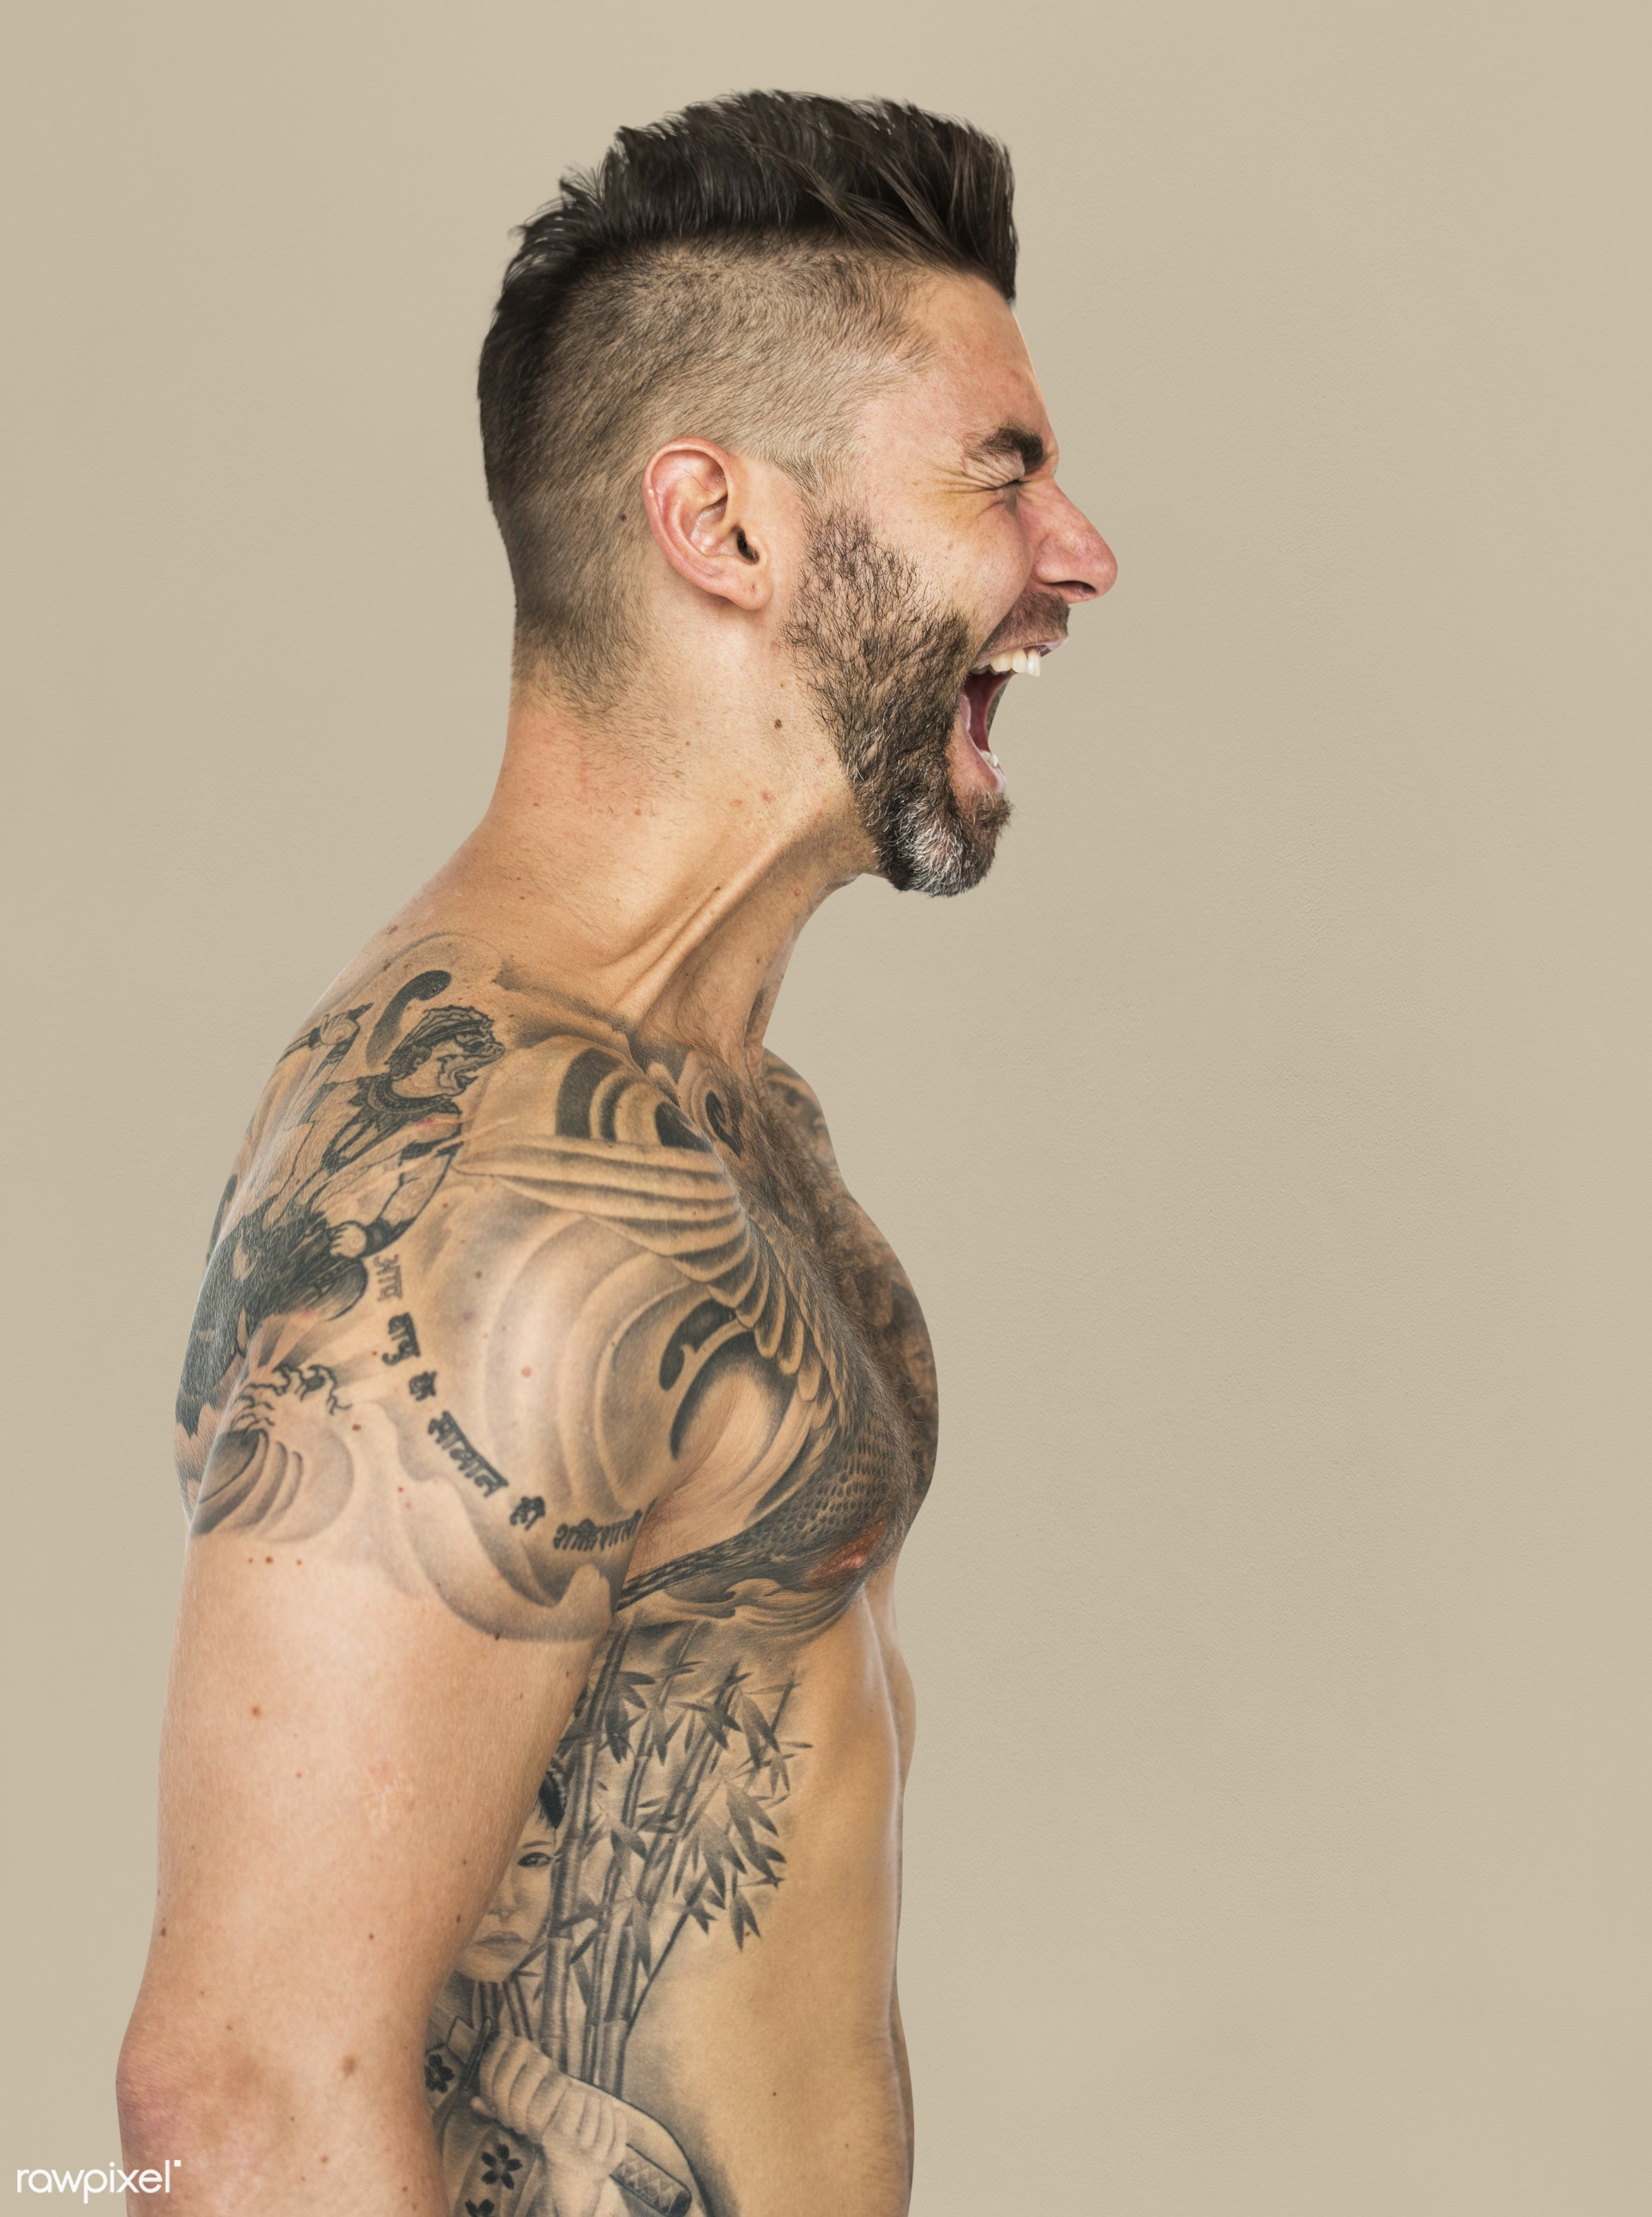 adult, aggressive, agitated, angry, background, bare chest, beard, caucasian, chest, design, emotion, expression, facial,...